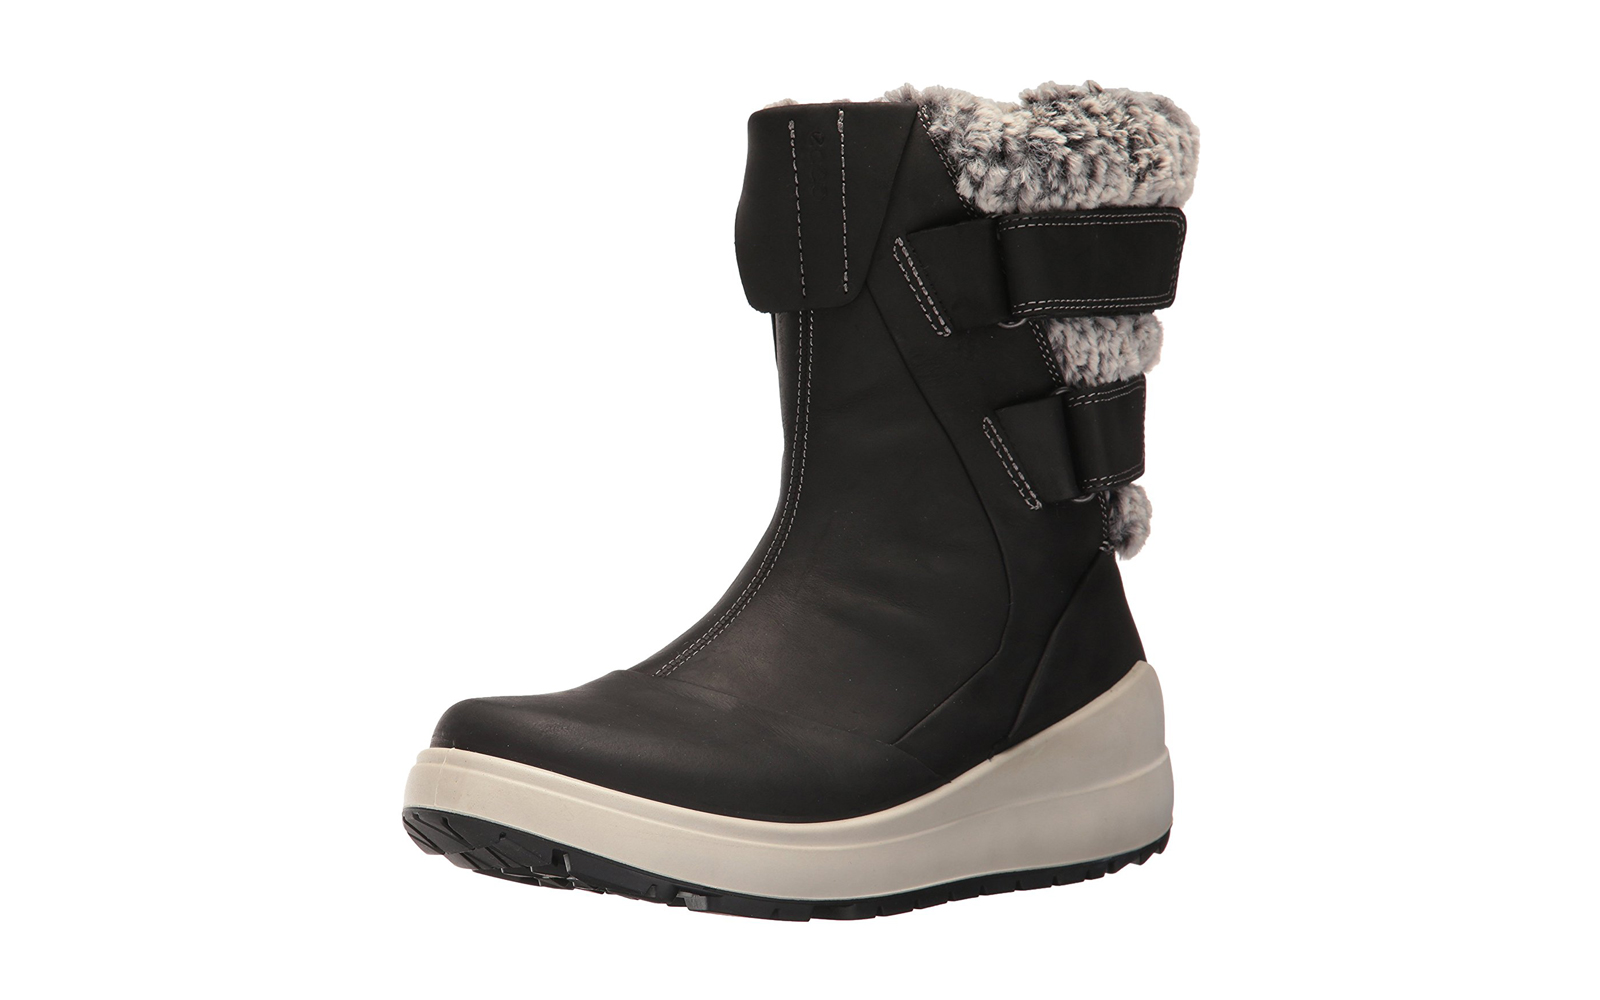 0e41632c486 The 9 Best Cold Weather Boots for Every Type of Trip | Travel + Leisure